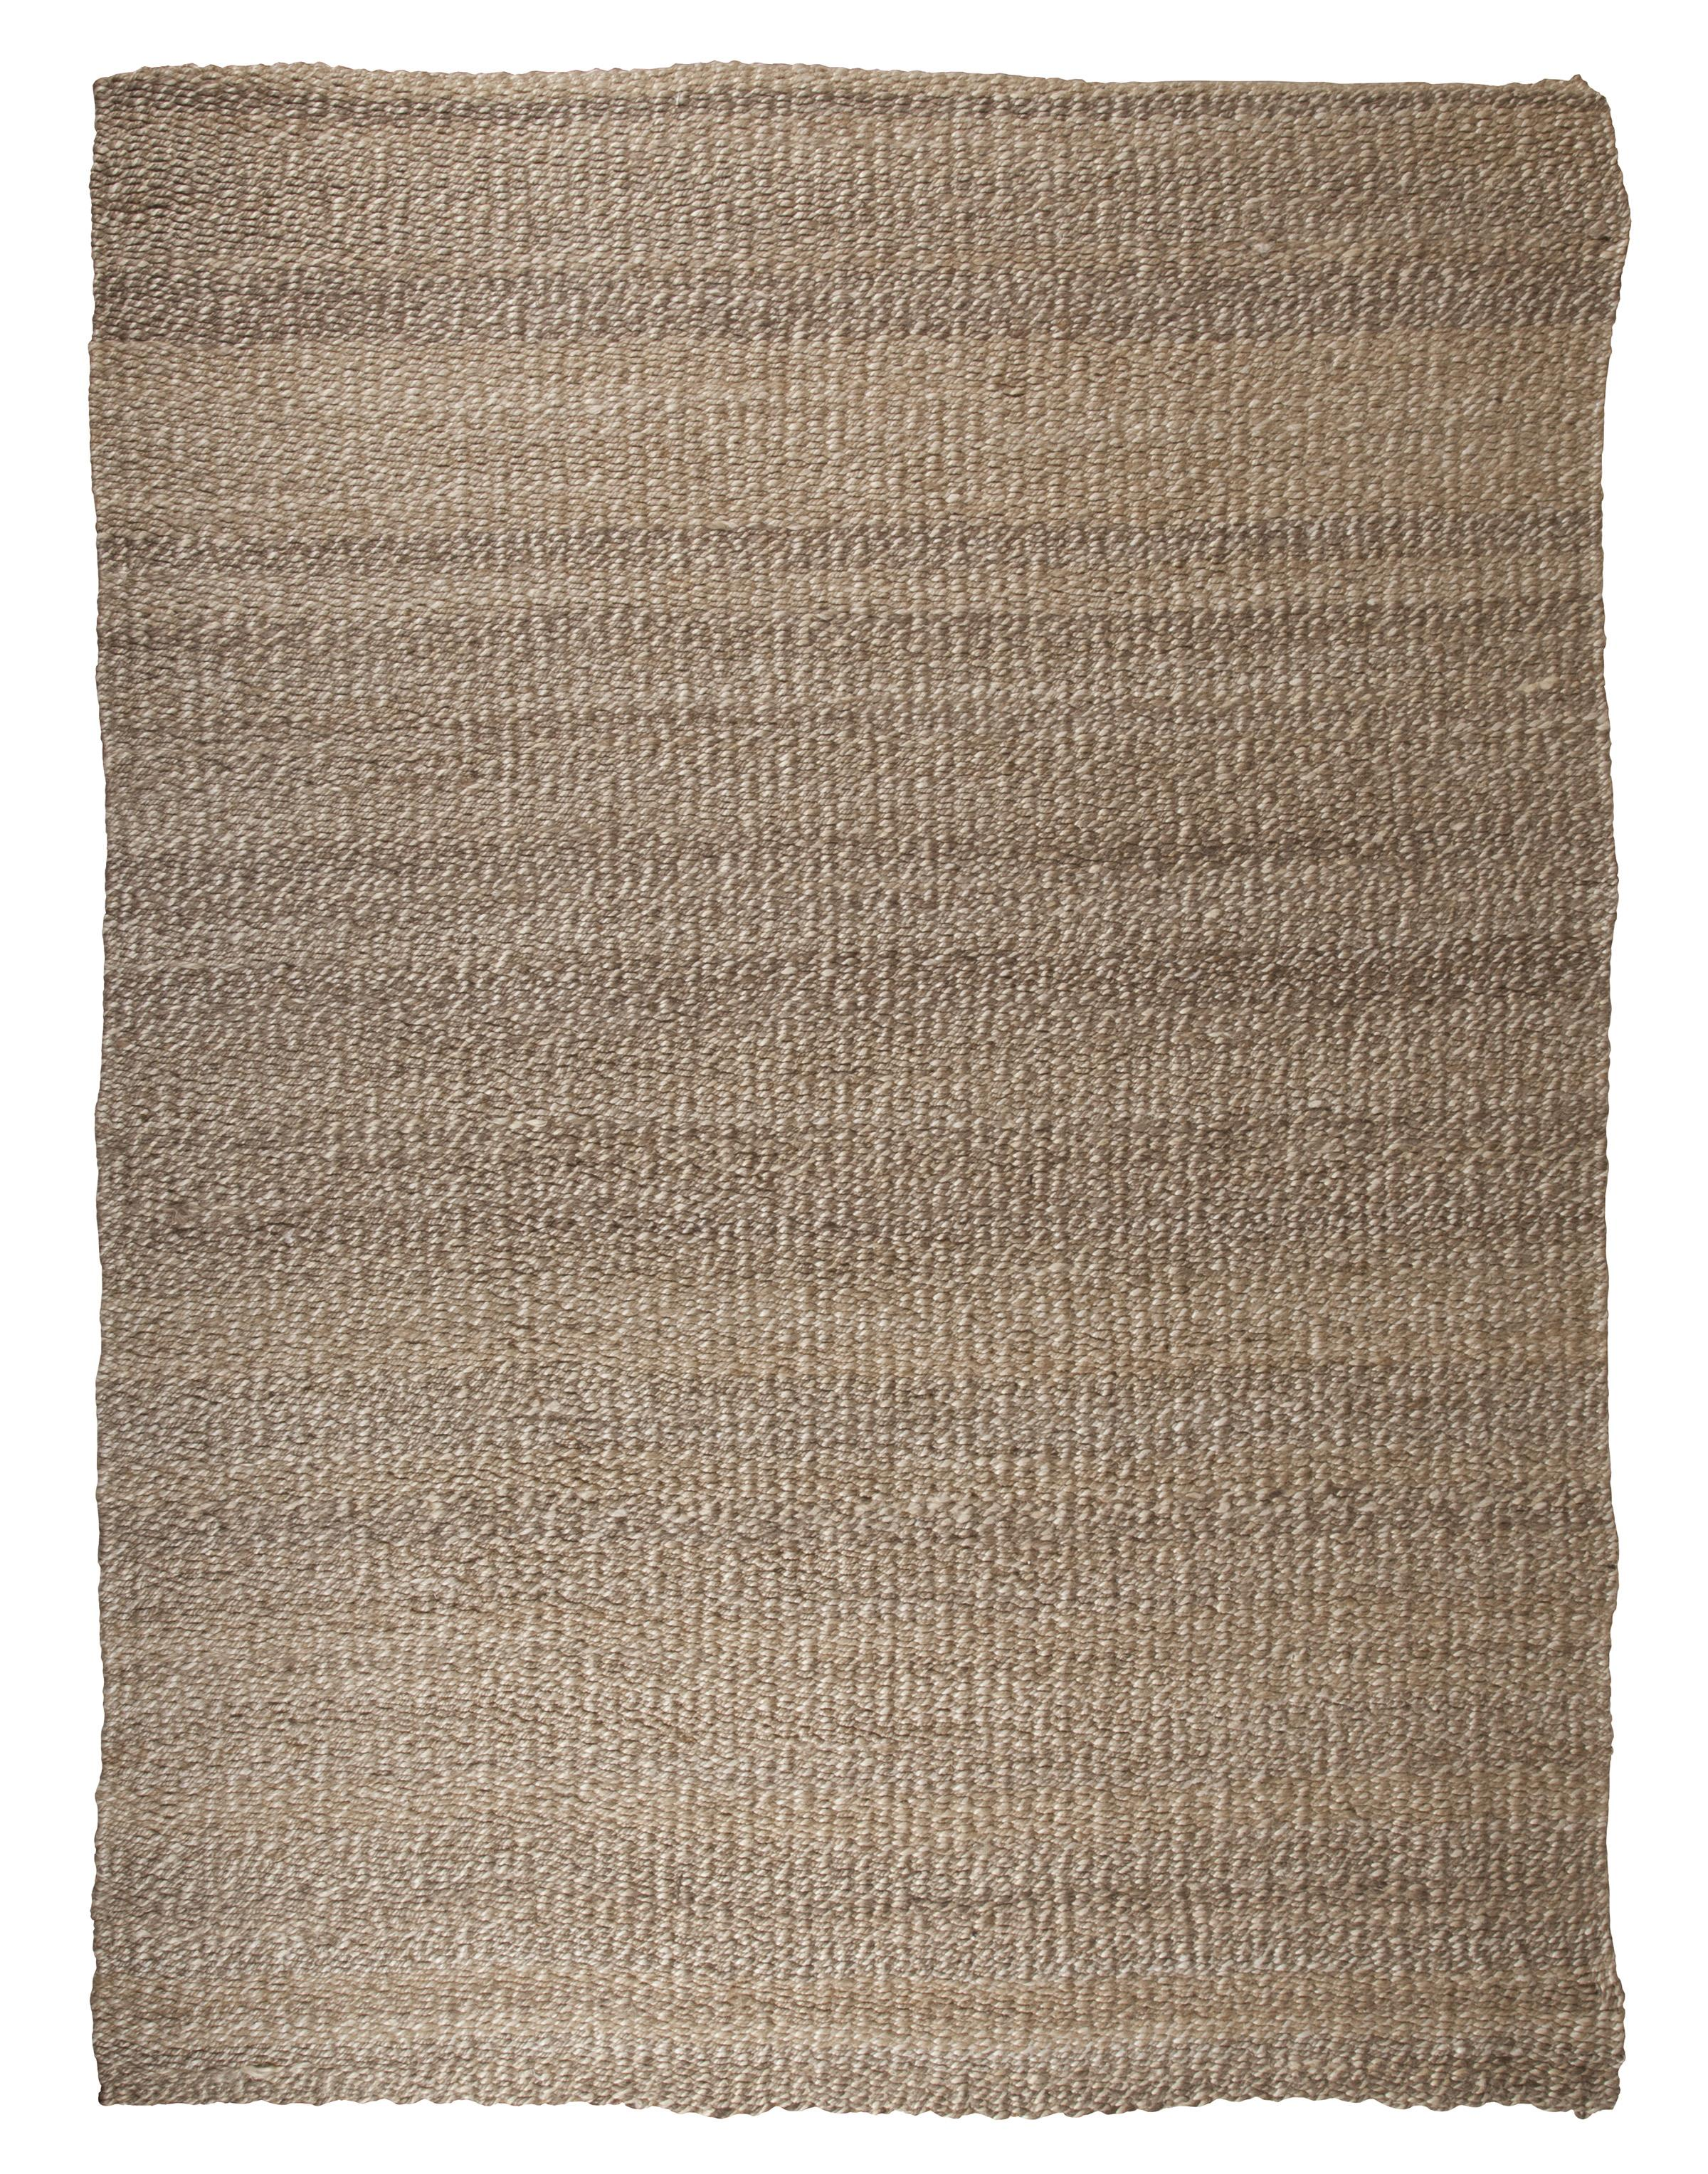 Signature Design by Ashley Contemporary Area Rugs Textured - Tan/White Medium Rug - Item Number: R401502